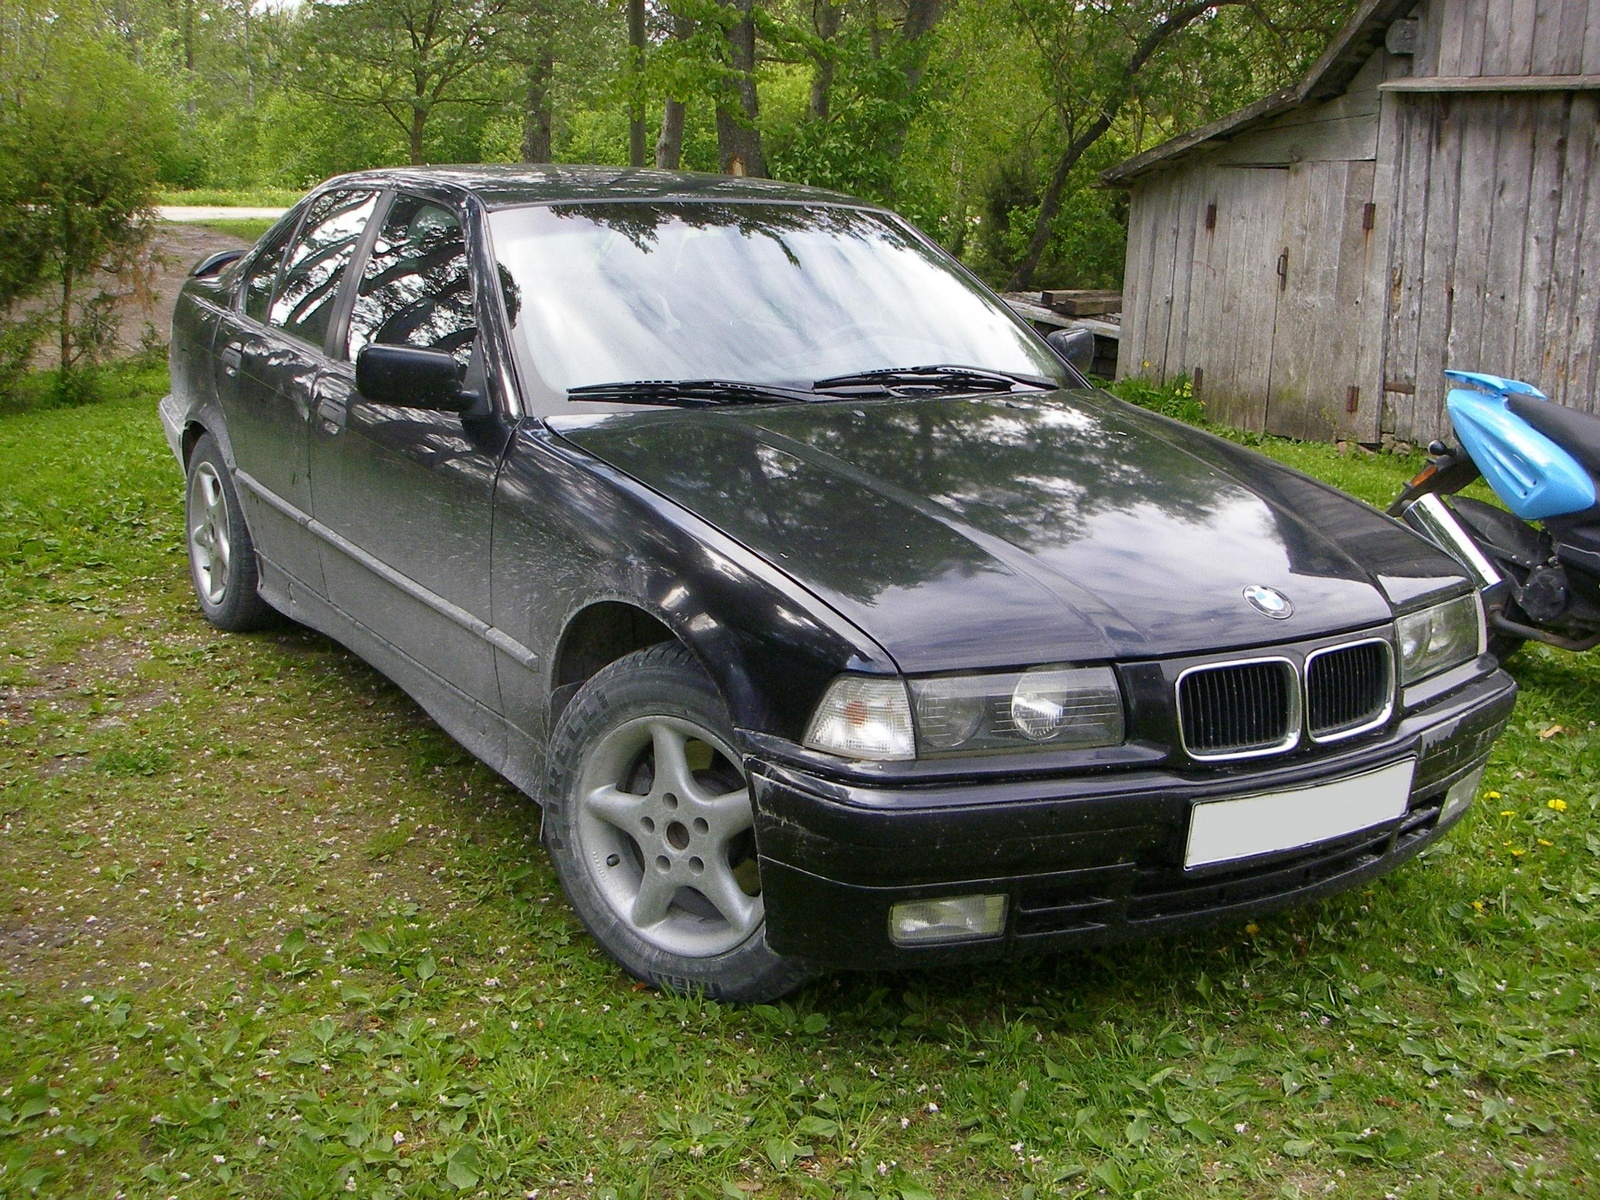 1992 bmw 3 series test drive review cargurus 1992 bmw 3 series test drive review